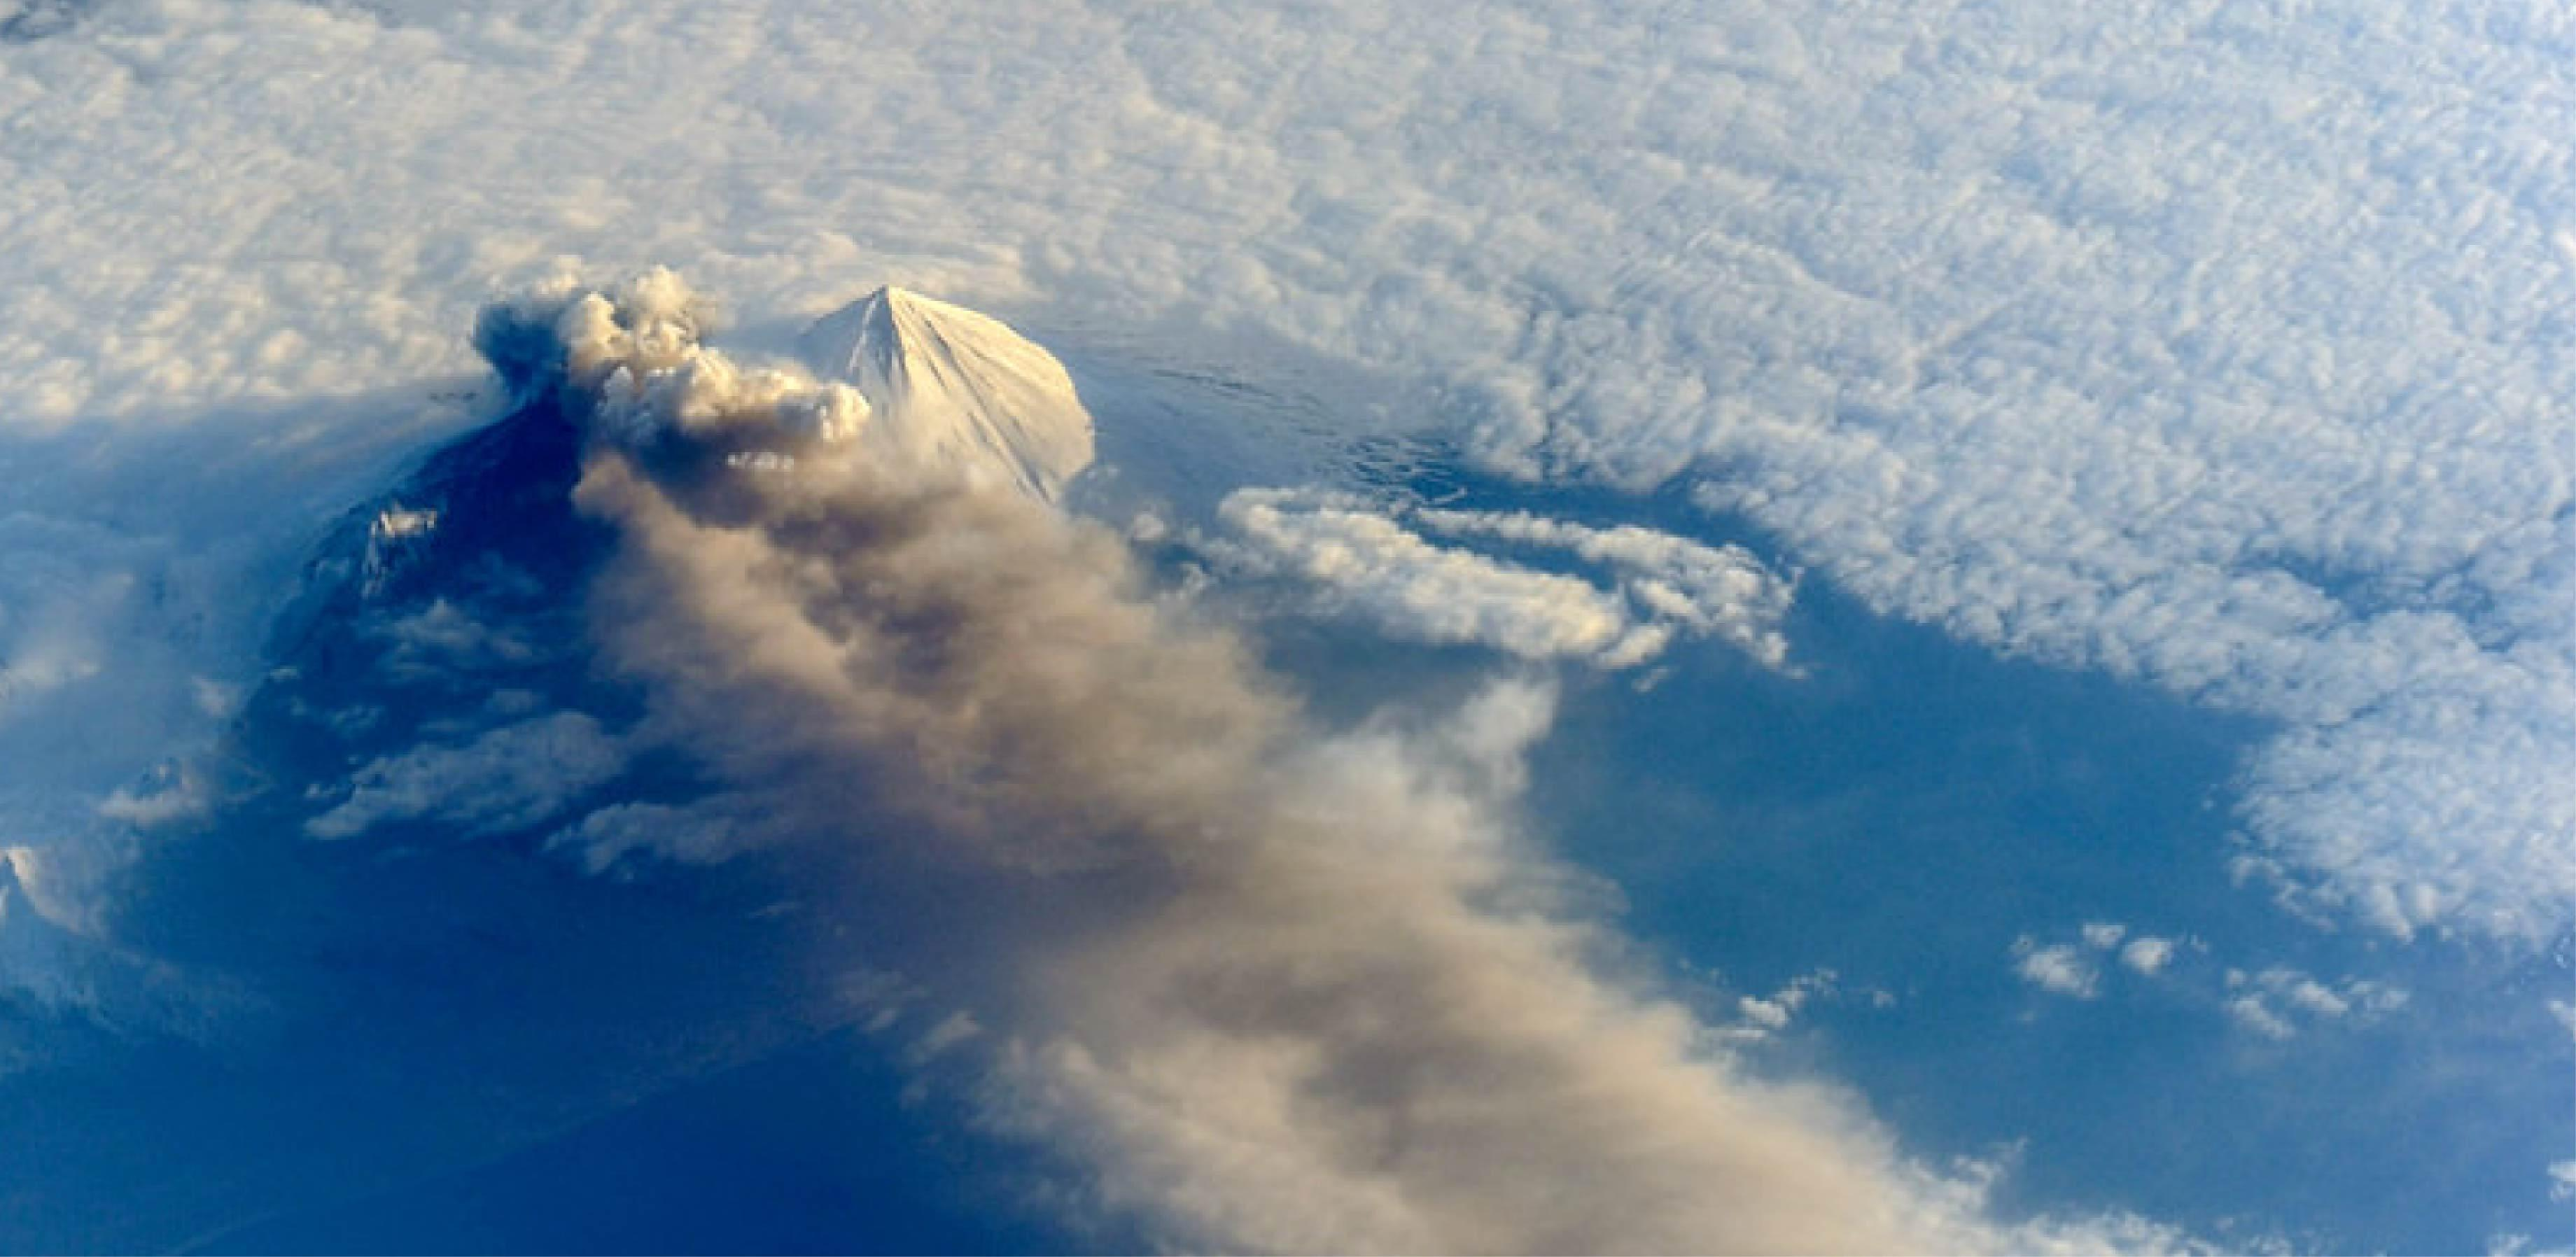 Satellite image of a volcano from space, shrouded in clouds and spewing volcanic ash